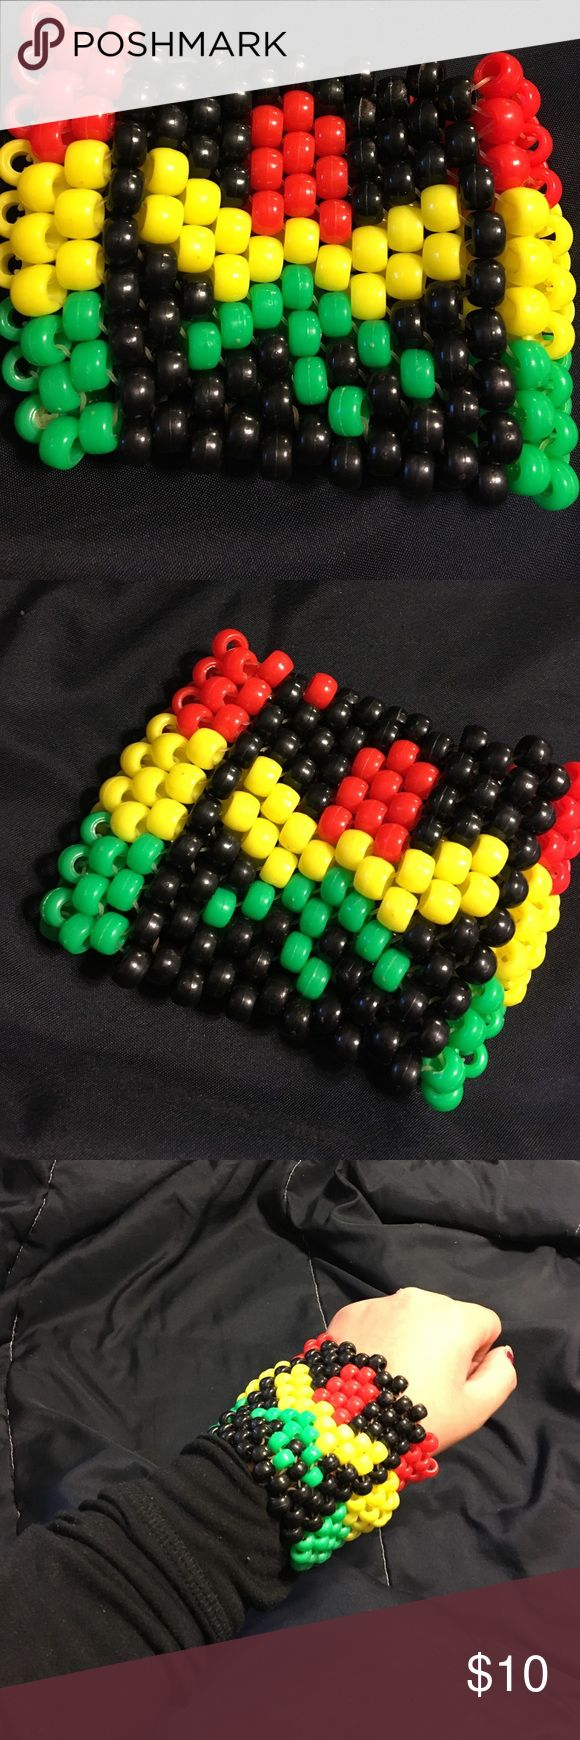 Kandi cuff Rasta ganja cuff, since this was my first cuff it does have a bead in the wrong color (seen in second picture) Jewelry Bracelets